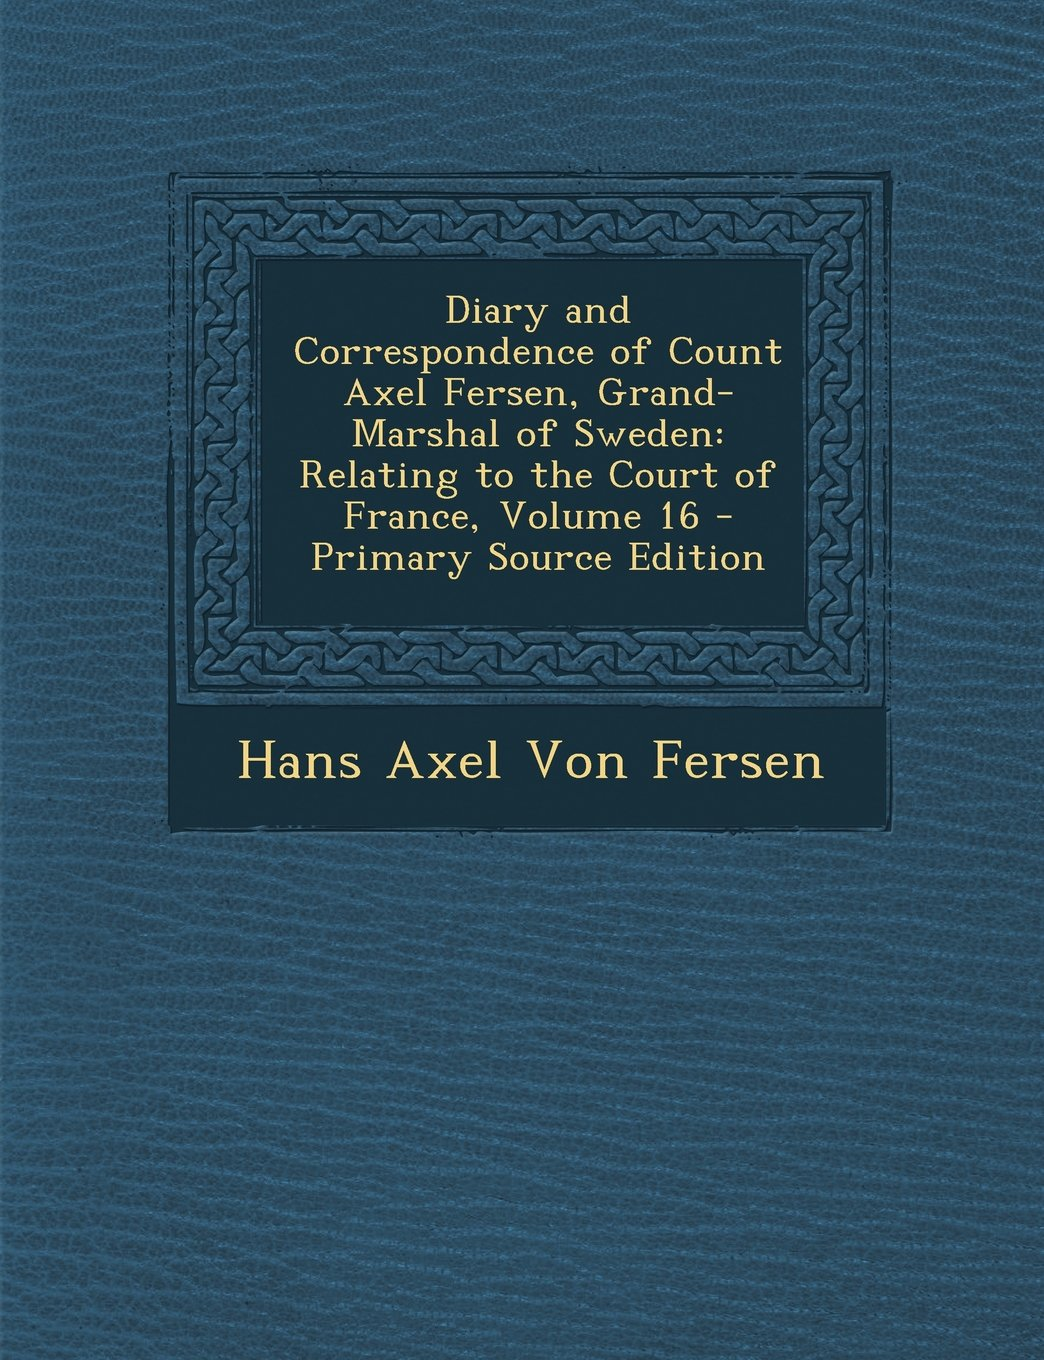 Diary and Correspondence of Count Axel Fersen, Grand-Marshal of Sweden: Relating to the Court of France, Volume 16 pdf epub